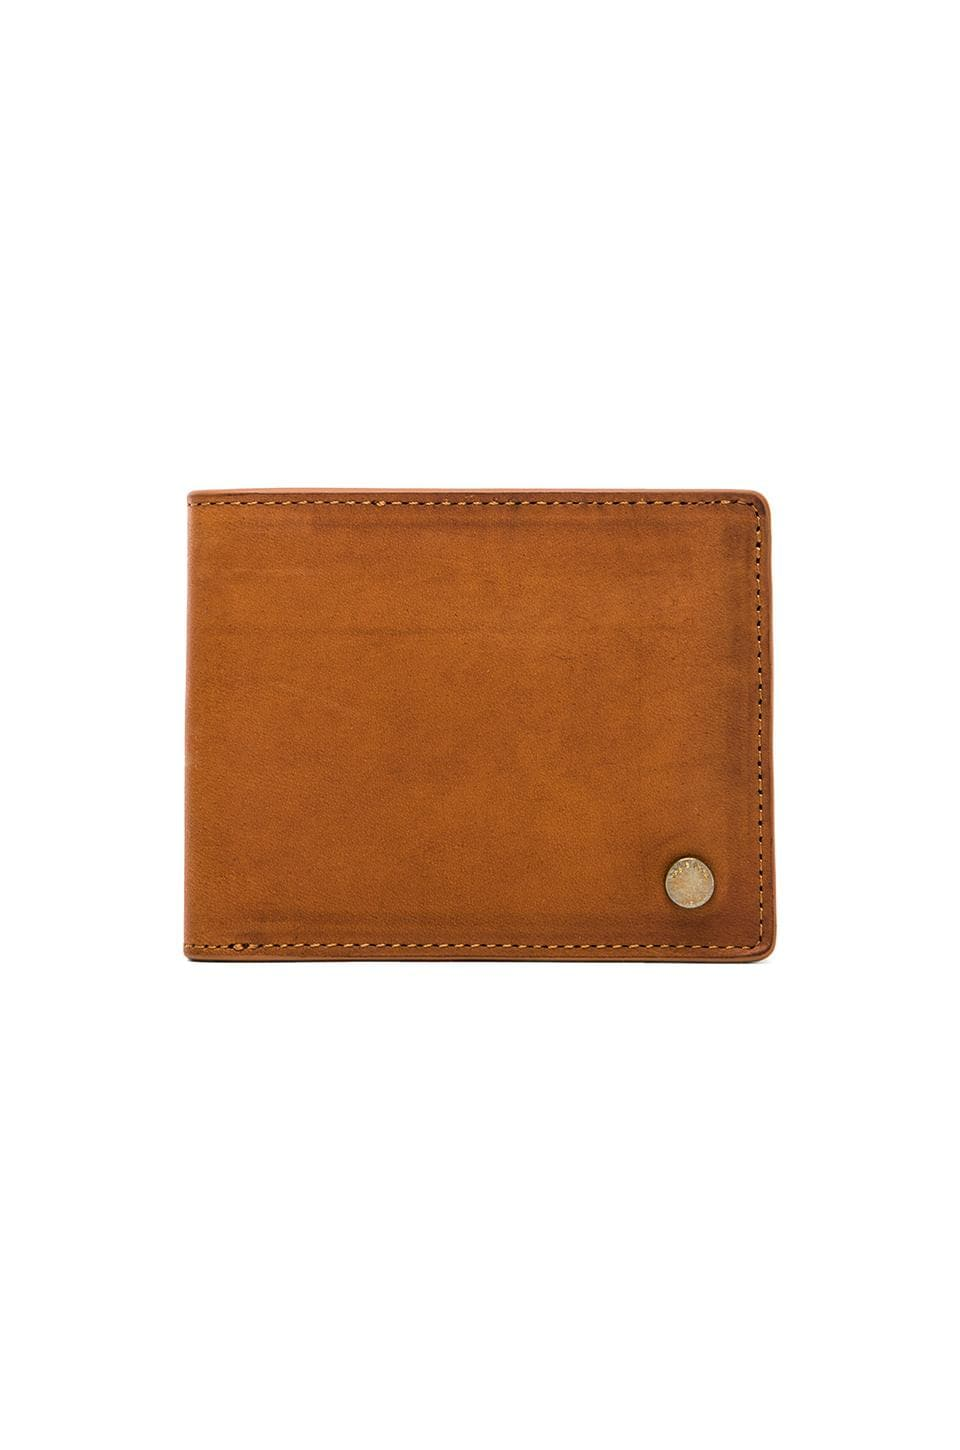 Rag & Bone Bi Fold Wallet in Brown Leather